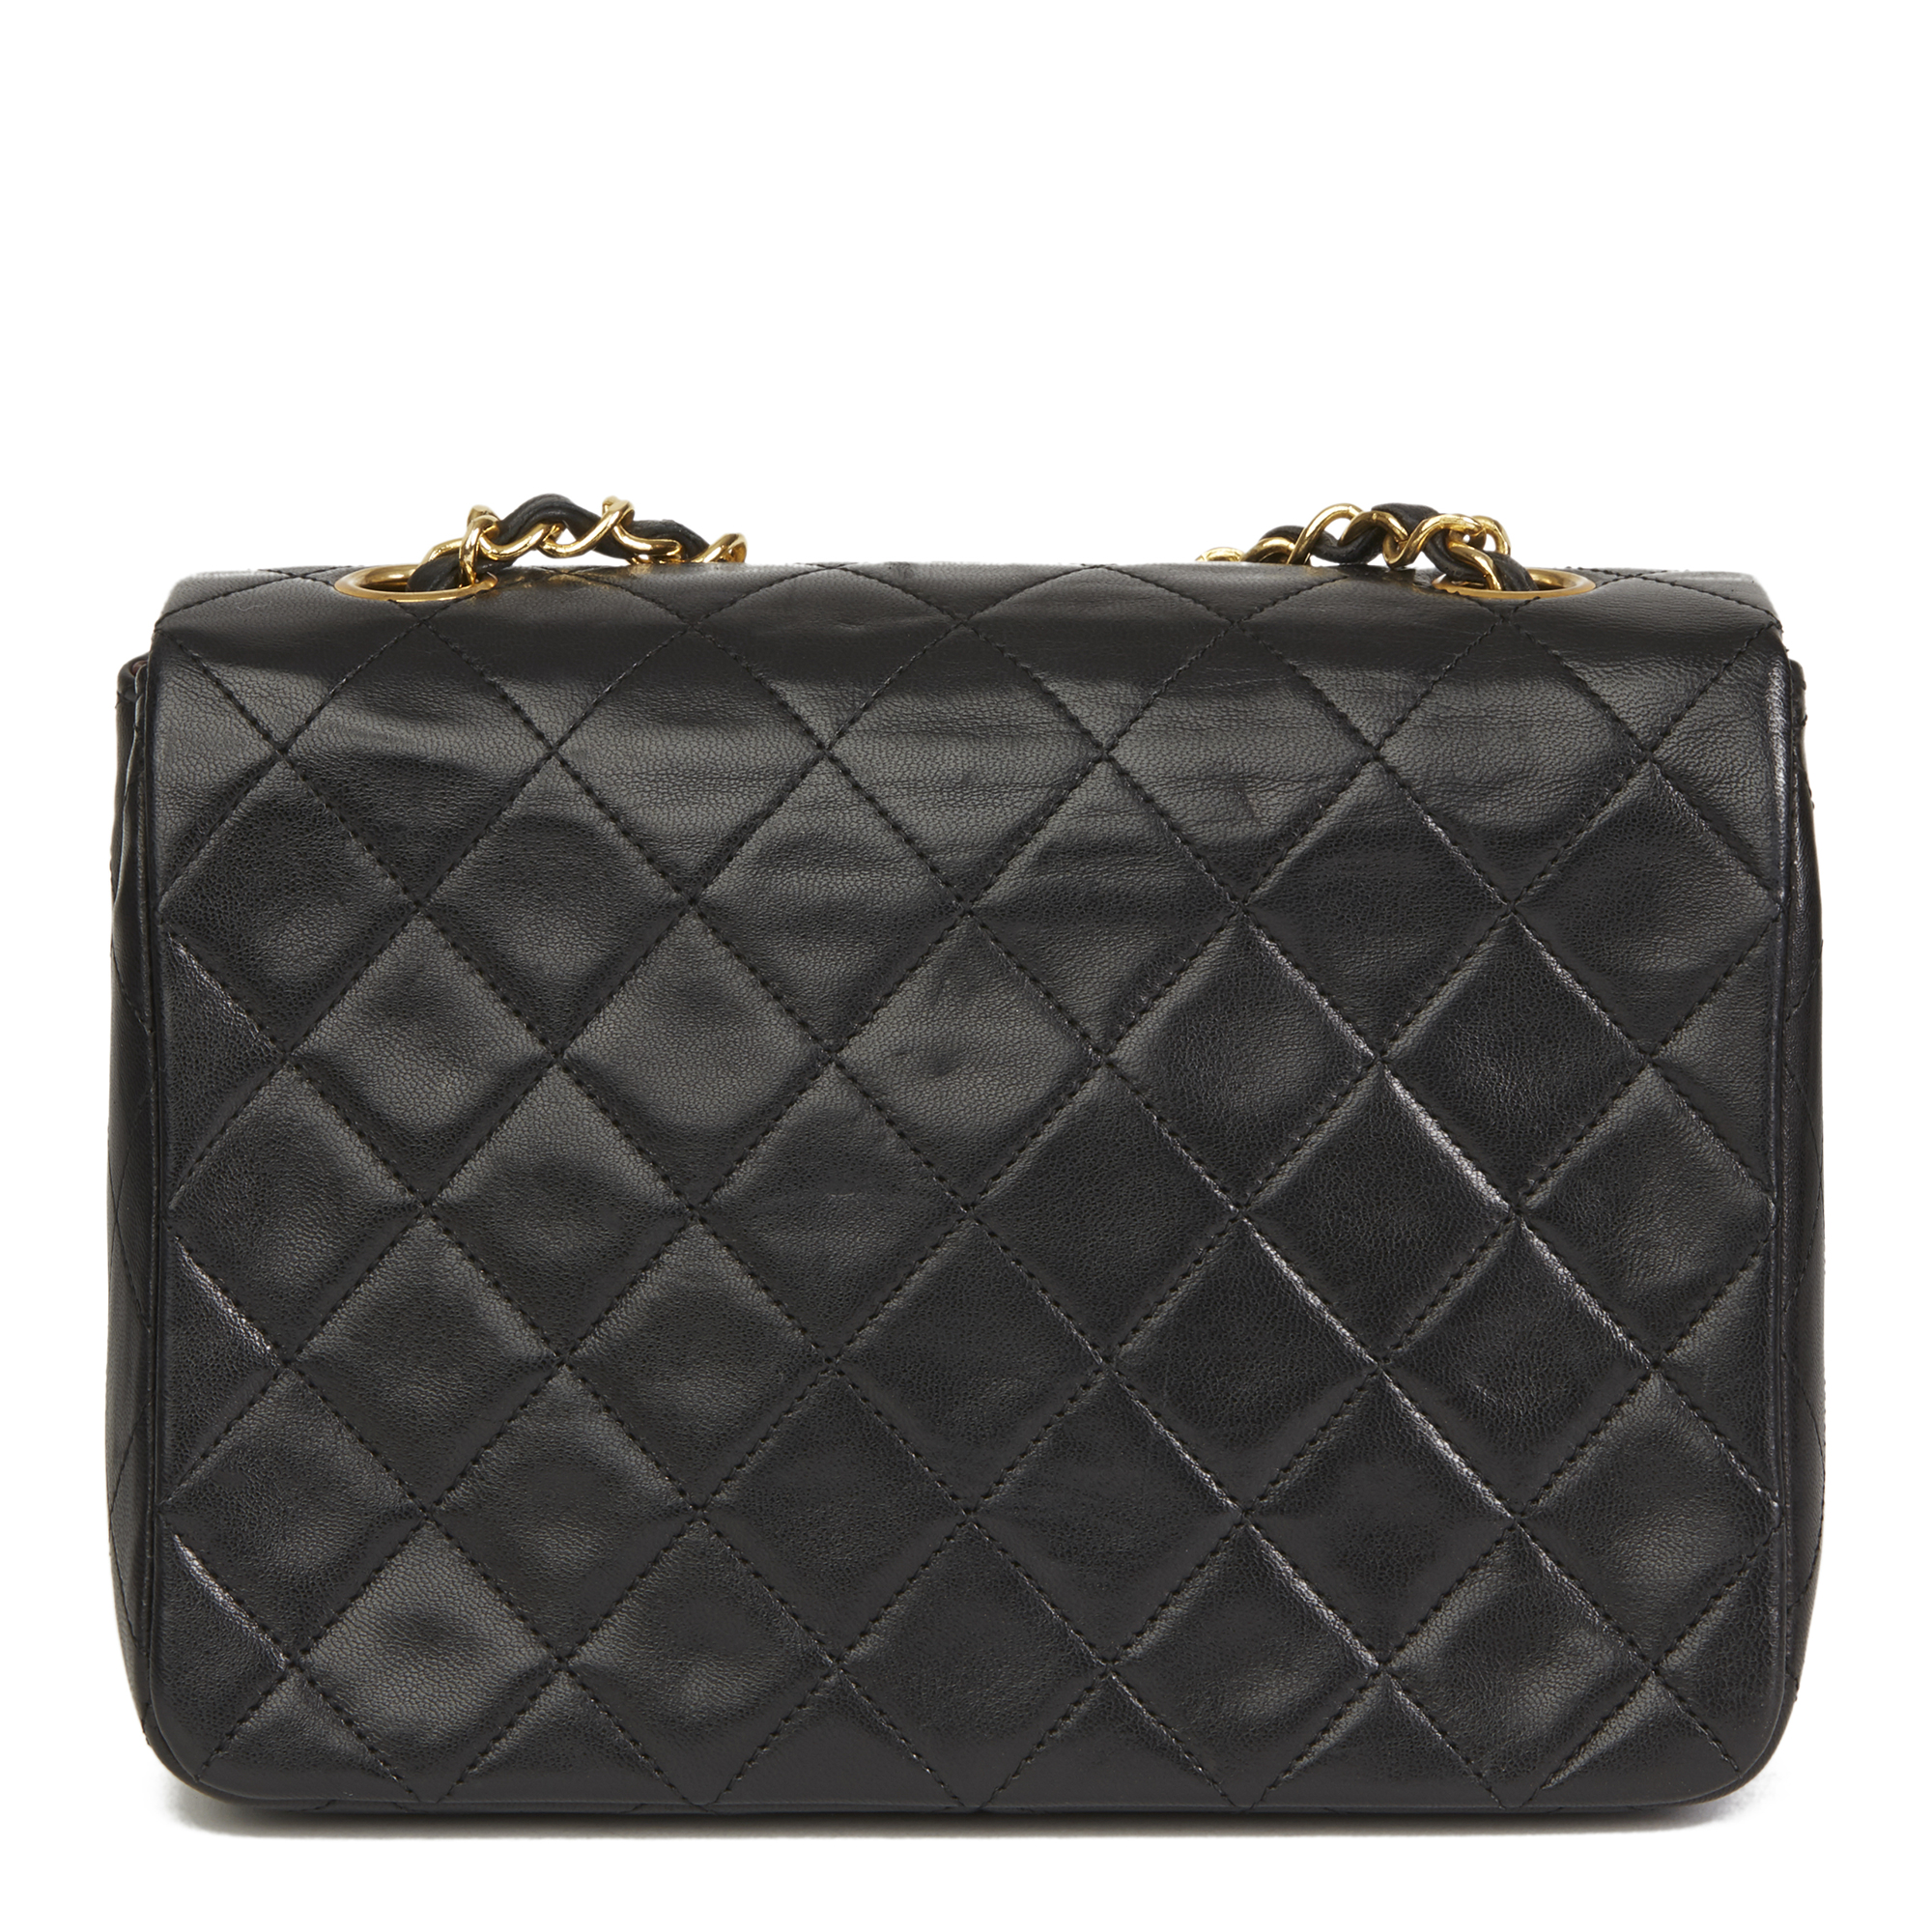 a9fe1cd86736cf Details about CHANEL BLACK QUILTED LAMBSKIN VINTAGE MINI FLAP BAG HB2633